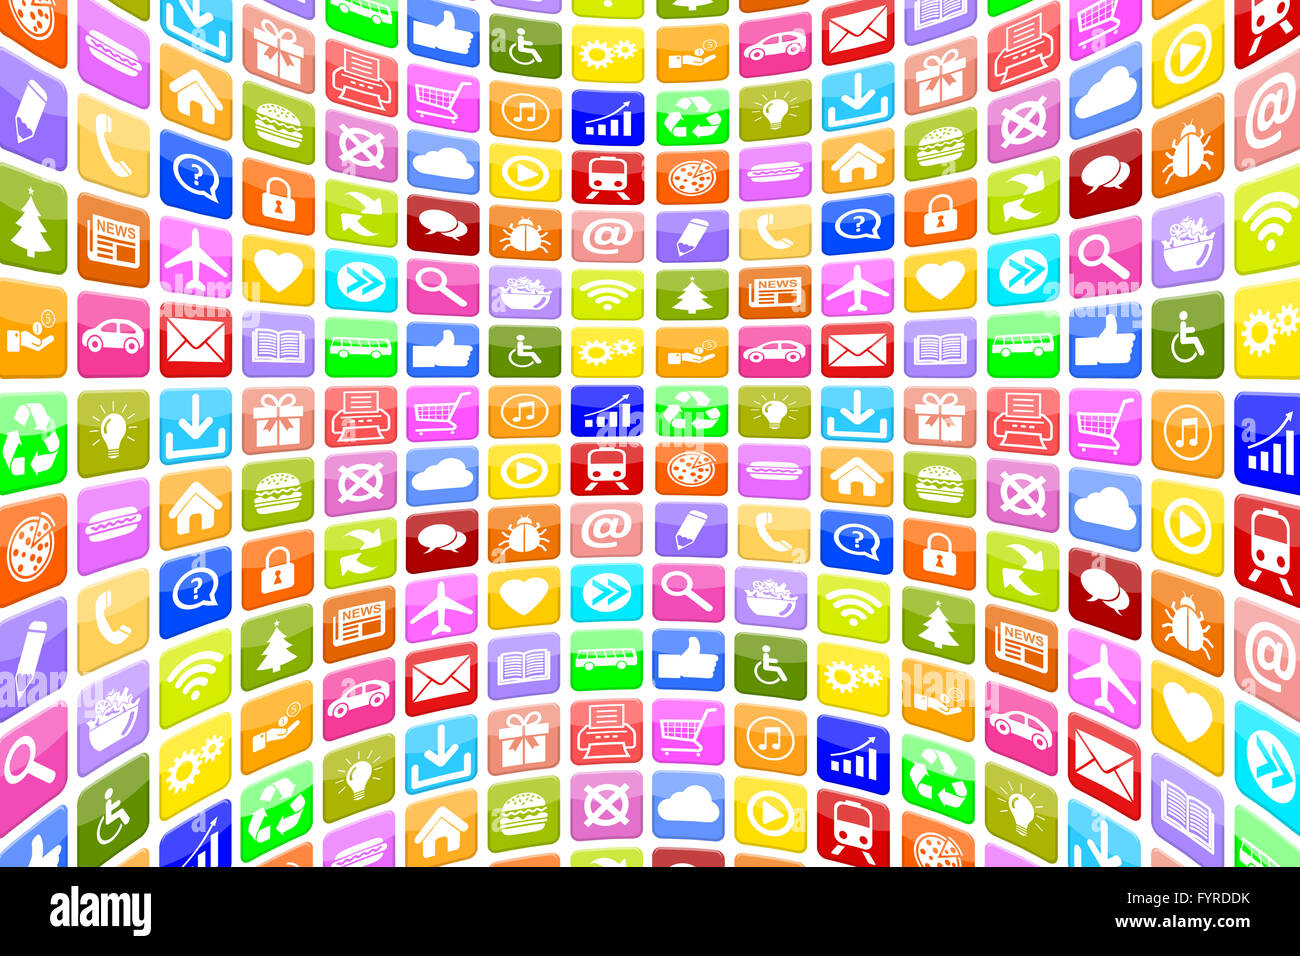 Application Apps App Icon Icons für Handy oder Smartphone Hintergrund - Stock Image